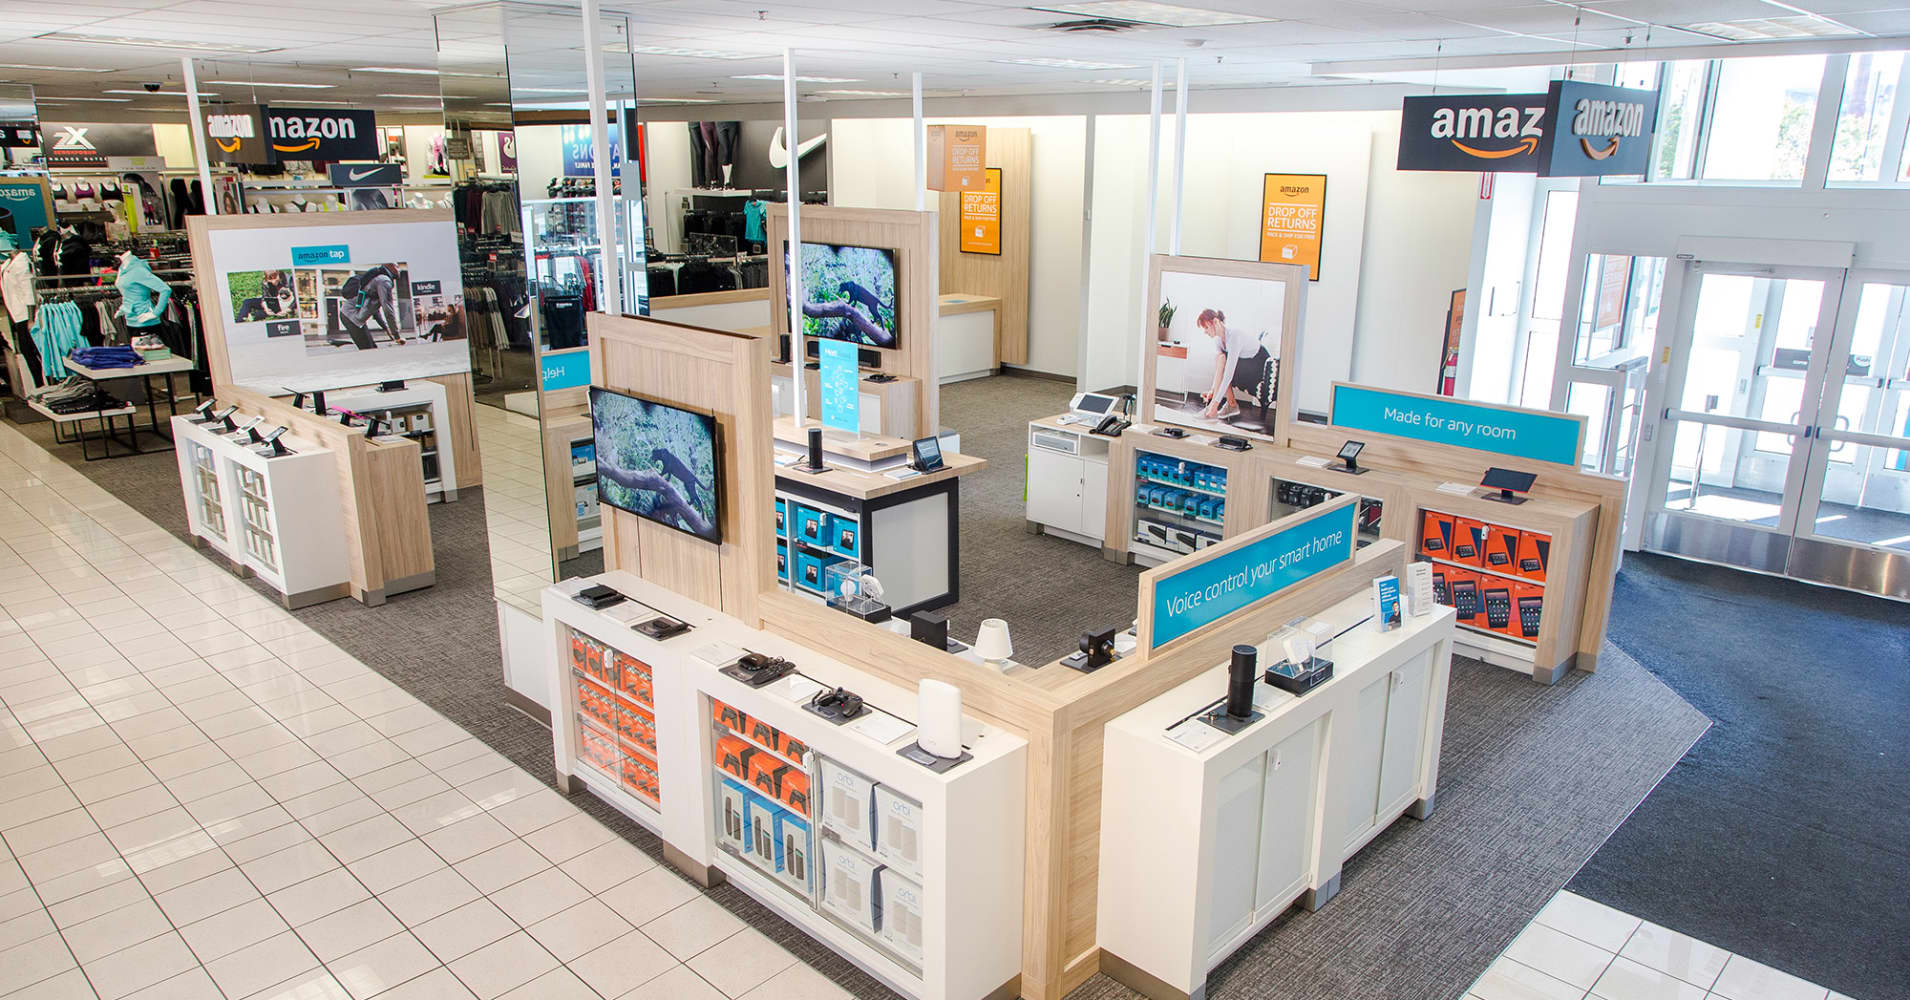 The 'Amazon experience' goes live at Kohl's